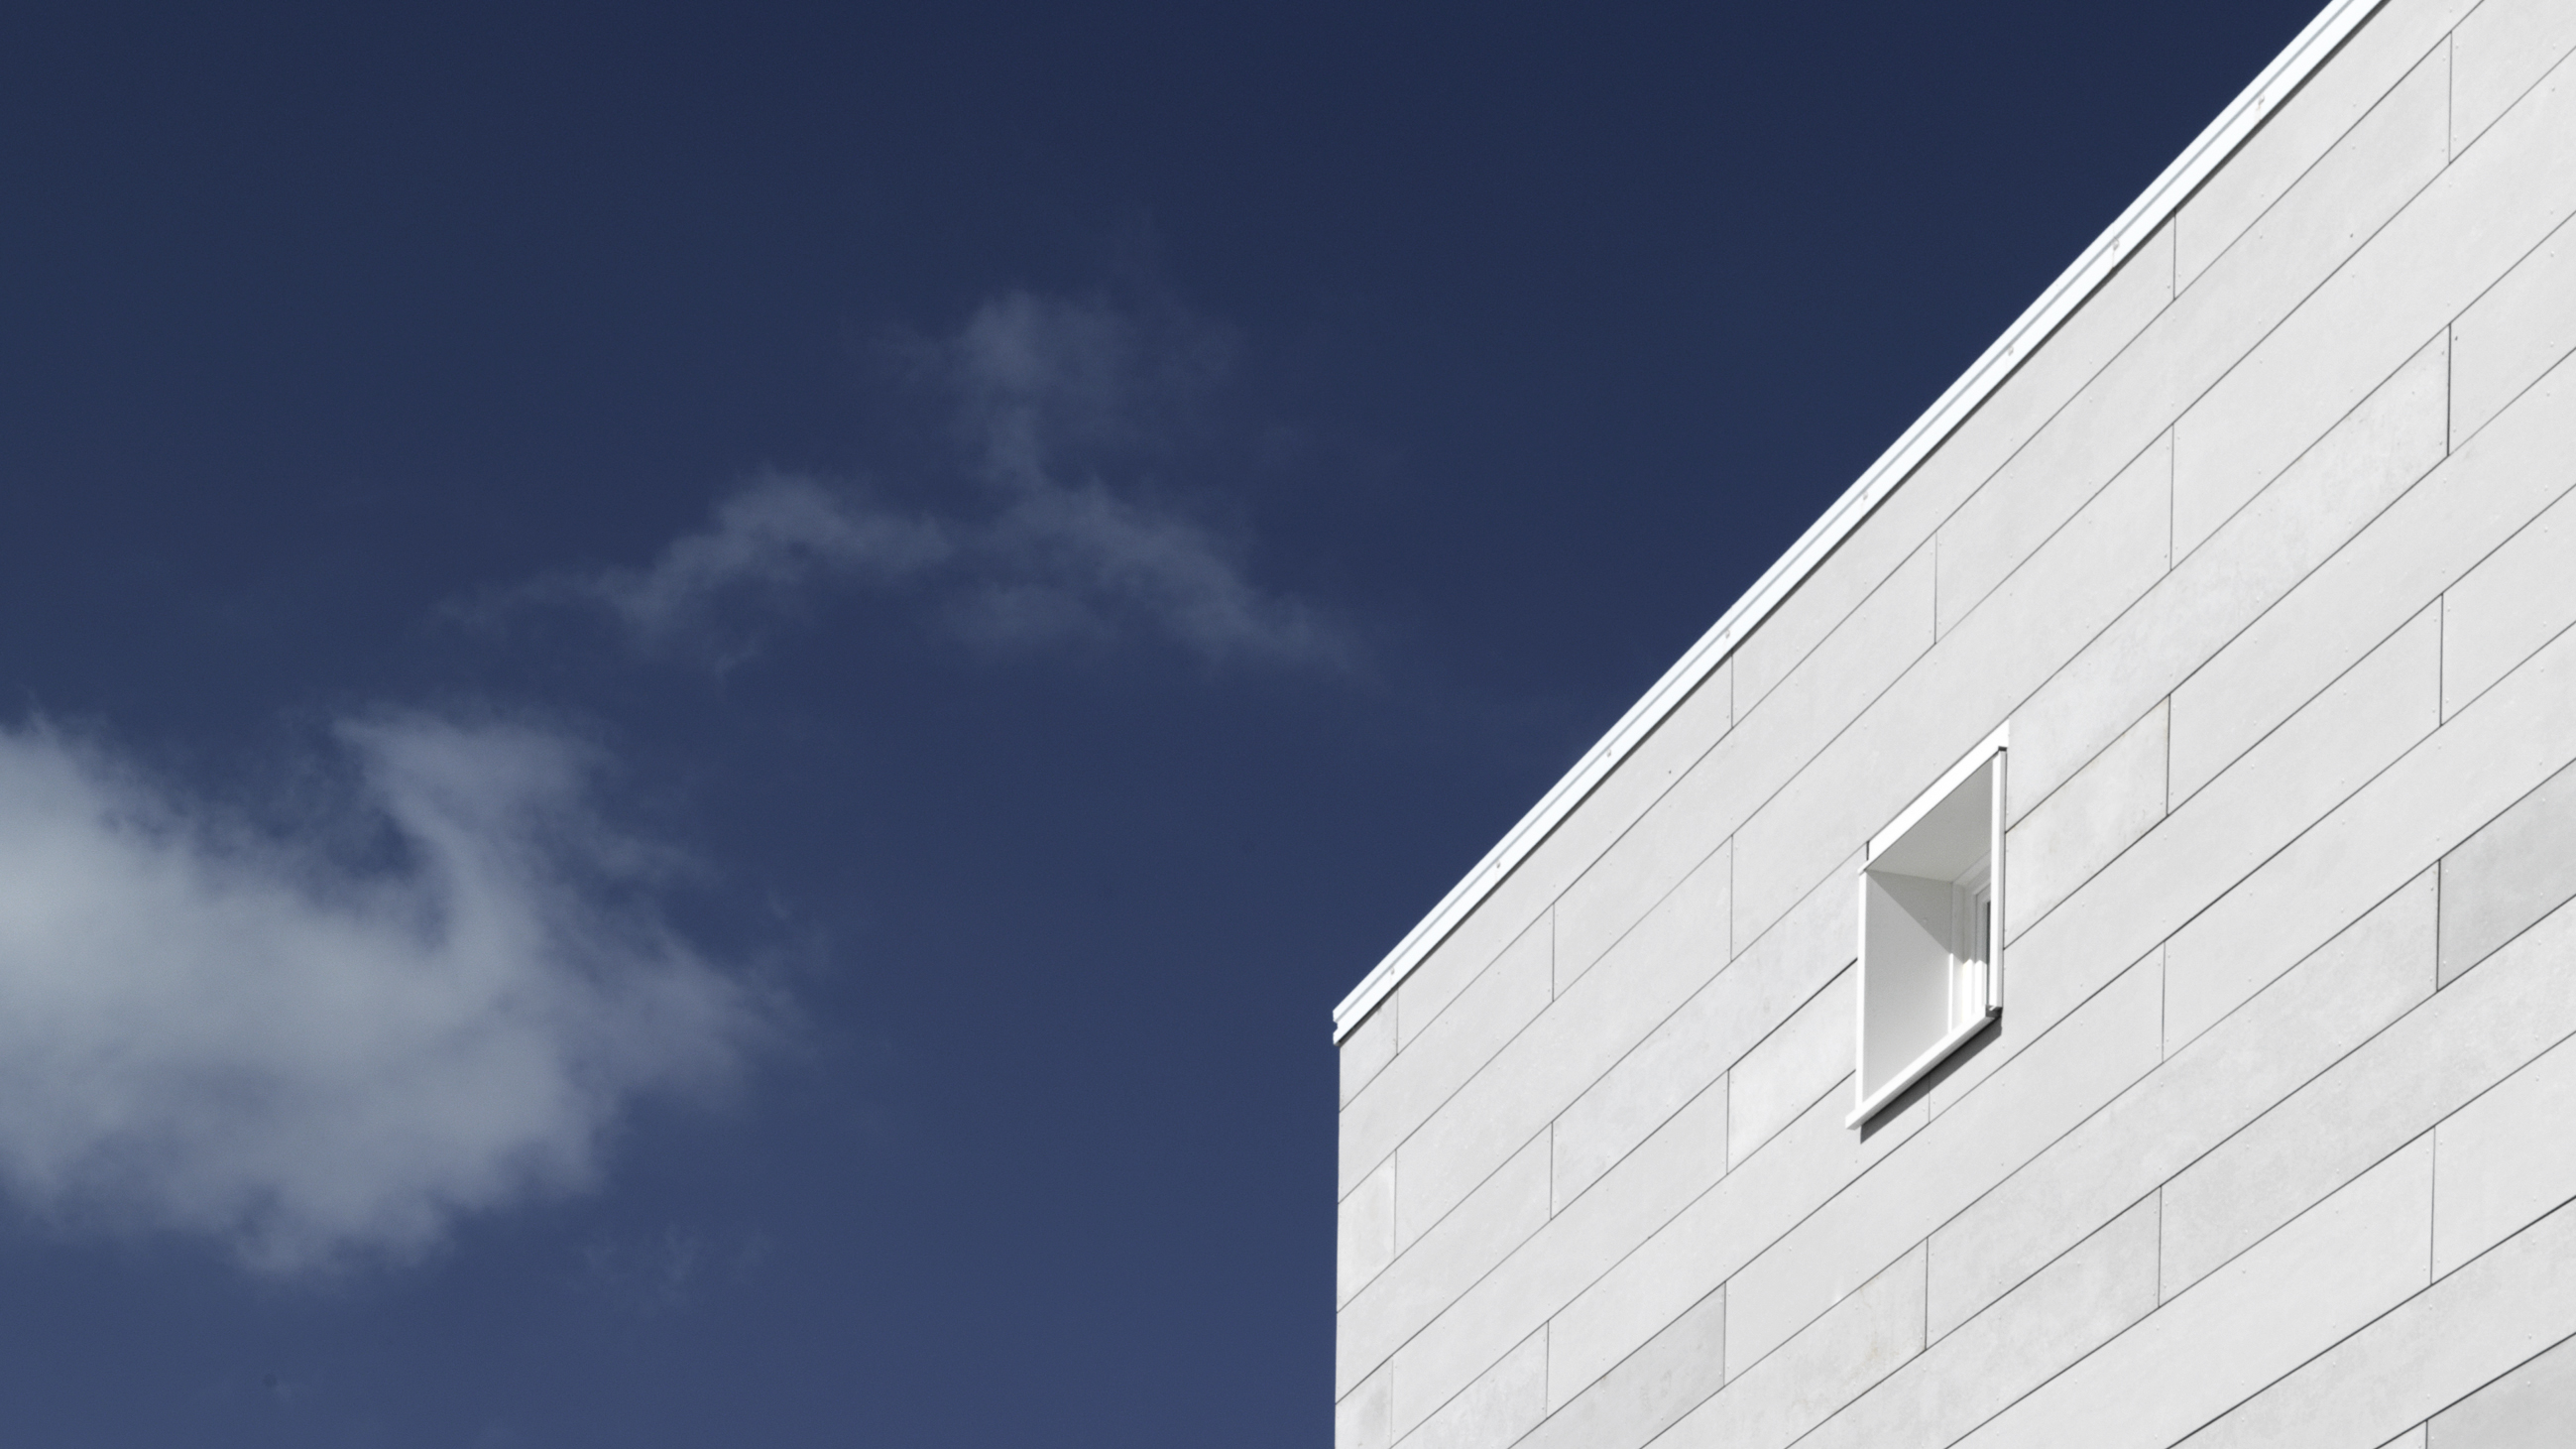 a wall with one window, in background the sky